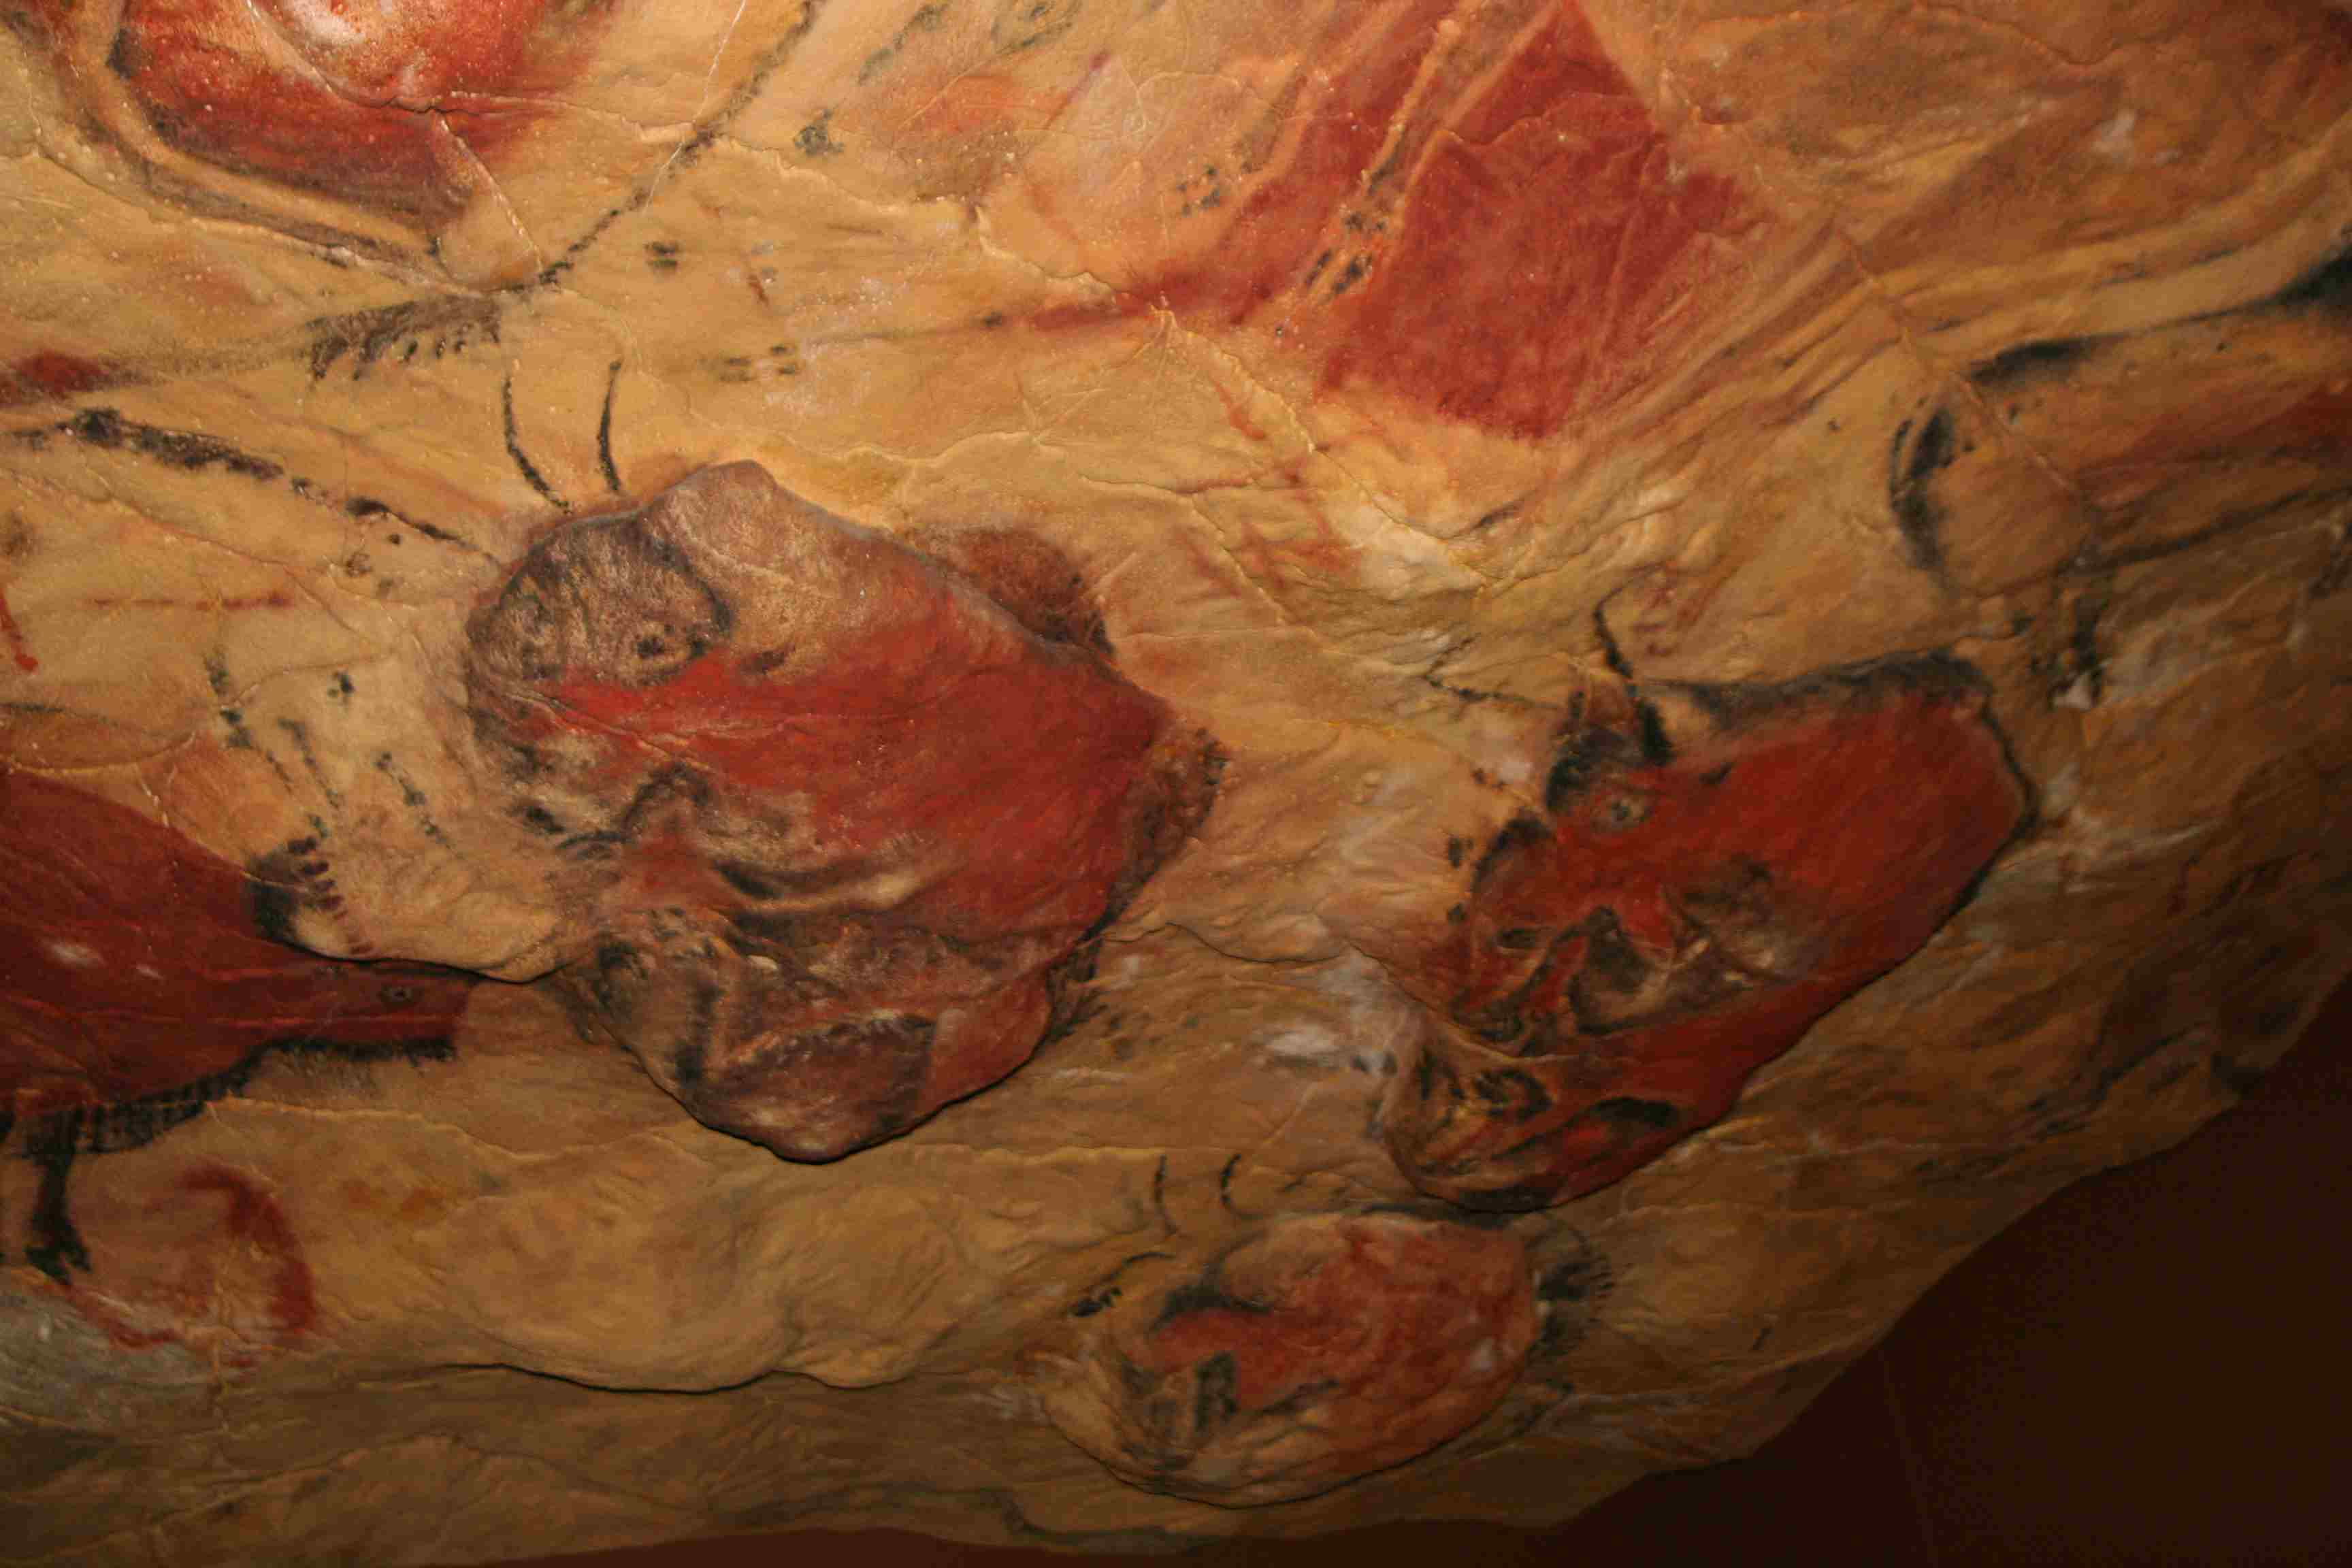 Altamira Cave Painting - Reproduction at the Deutsches Museum in Munich